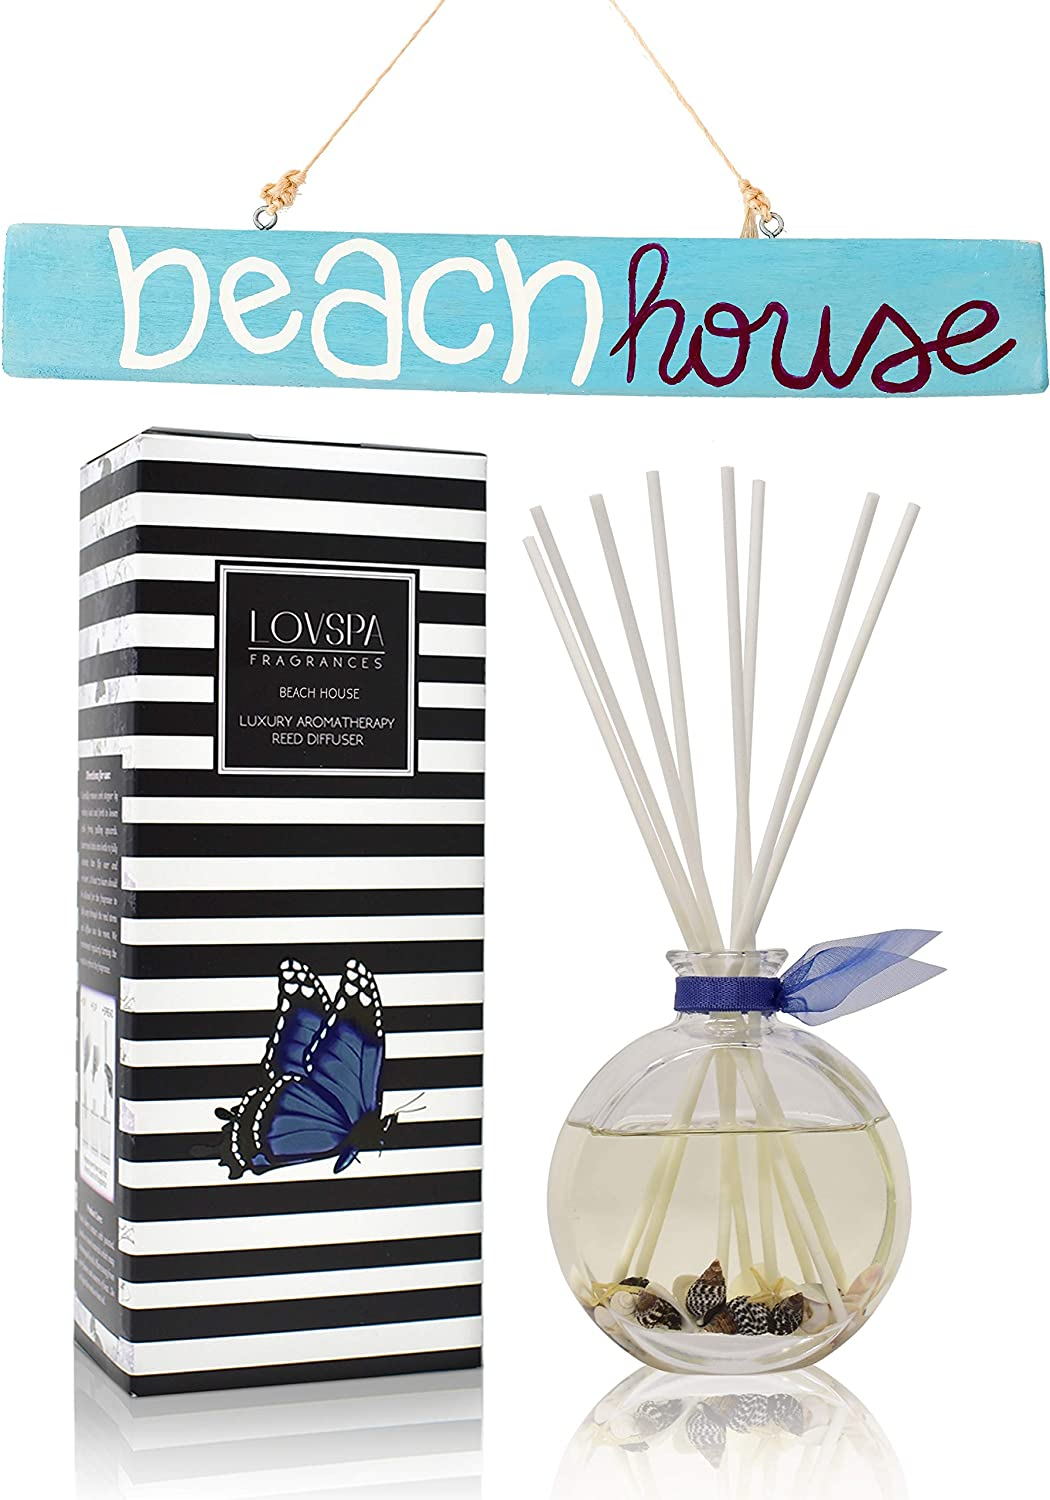 LOVSPA Beach House Reed Diffuser Oil Gift Set | Marine Grass, Sea Salt, Blue Lotus, Honeydew Melon, Jasmine & Aquatic Musk | Real Seashells in The Bottle! | Gorgeous Display for Your Ocean Home Décor